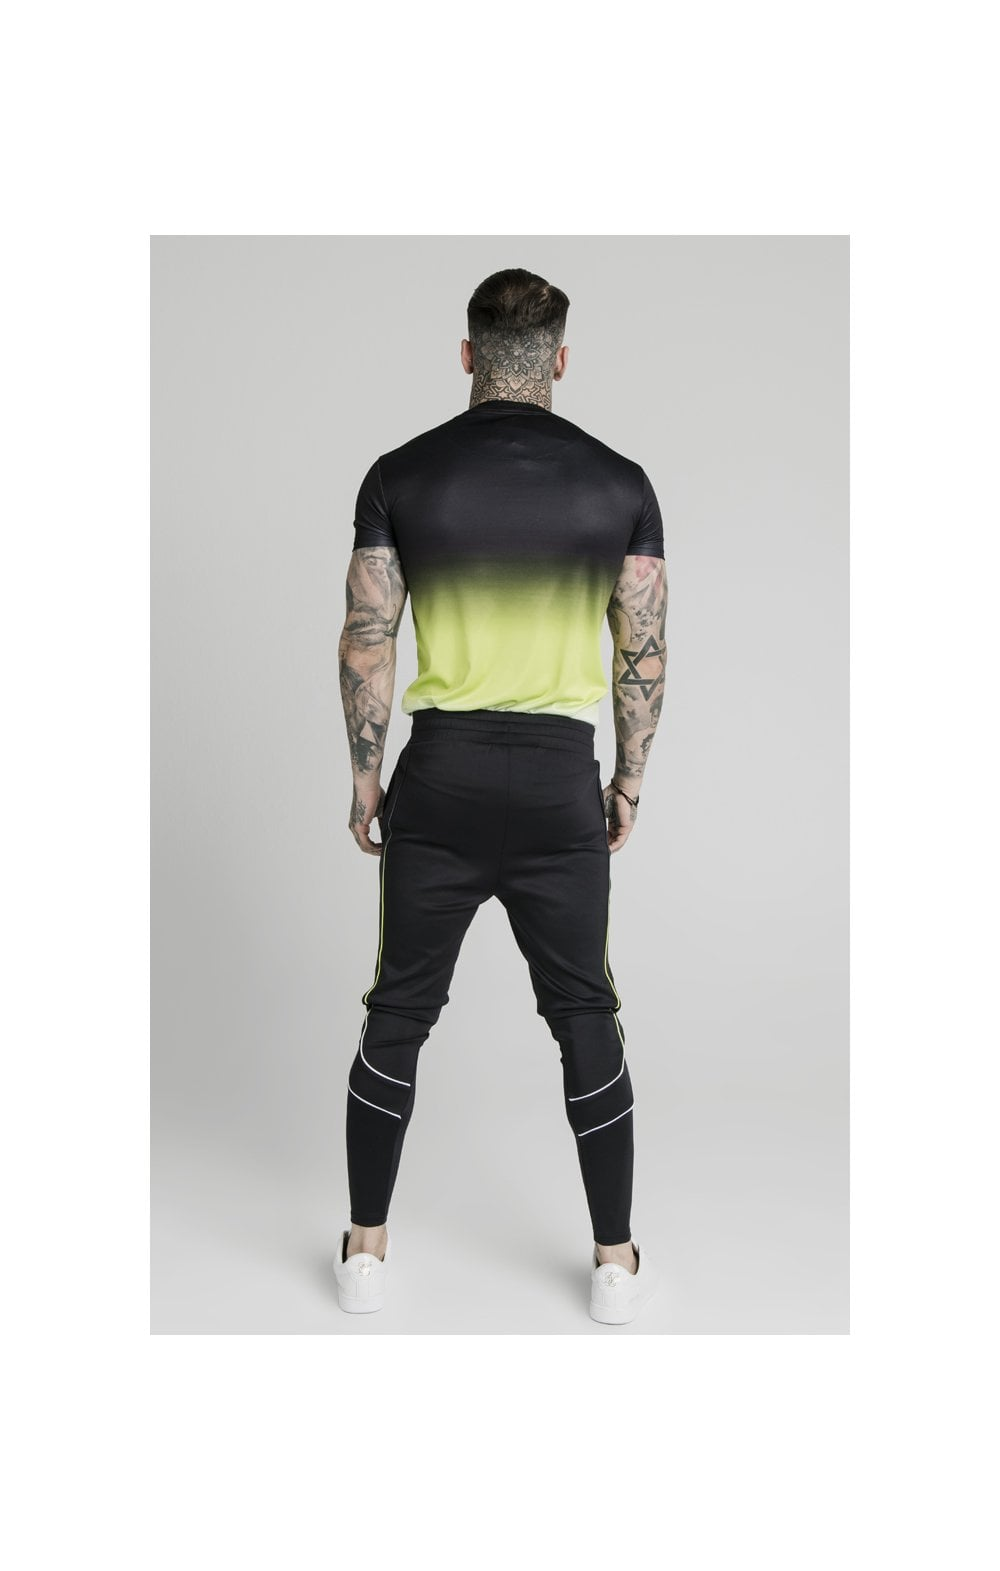 SikSilk S/S Tri Fade Tape Collar Tee - Black, Fluro & White (5)